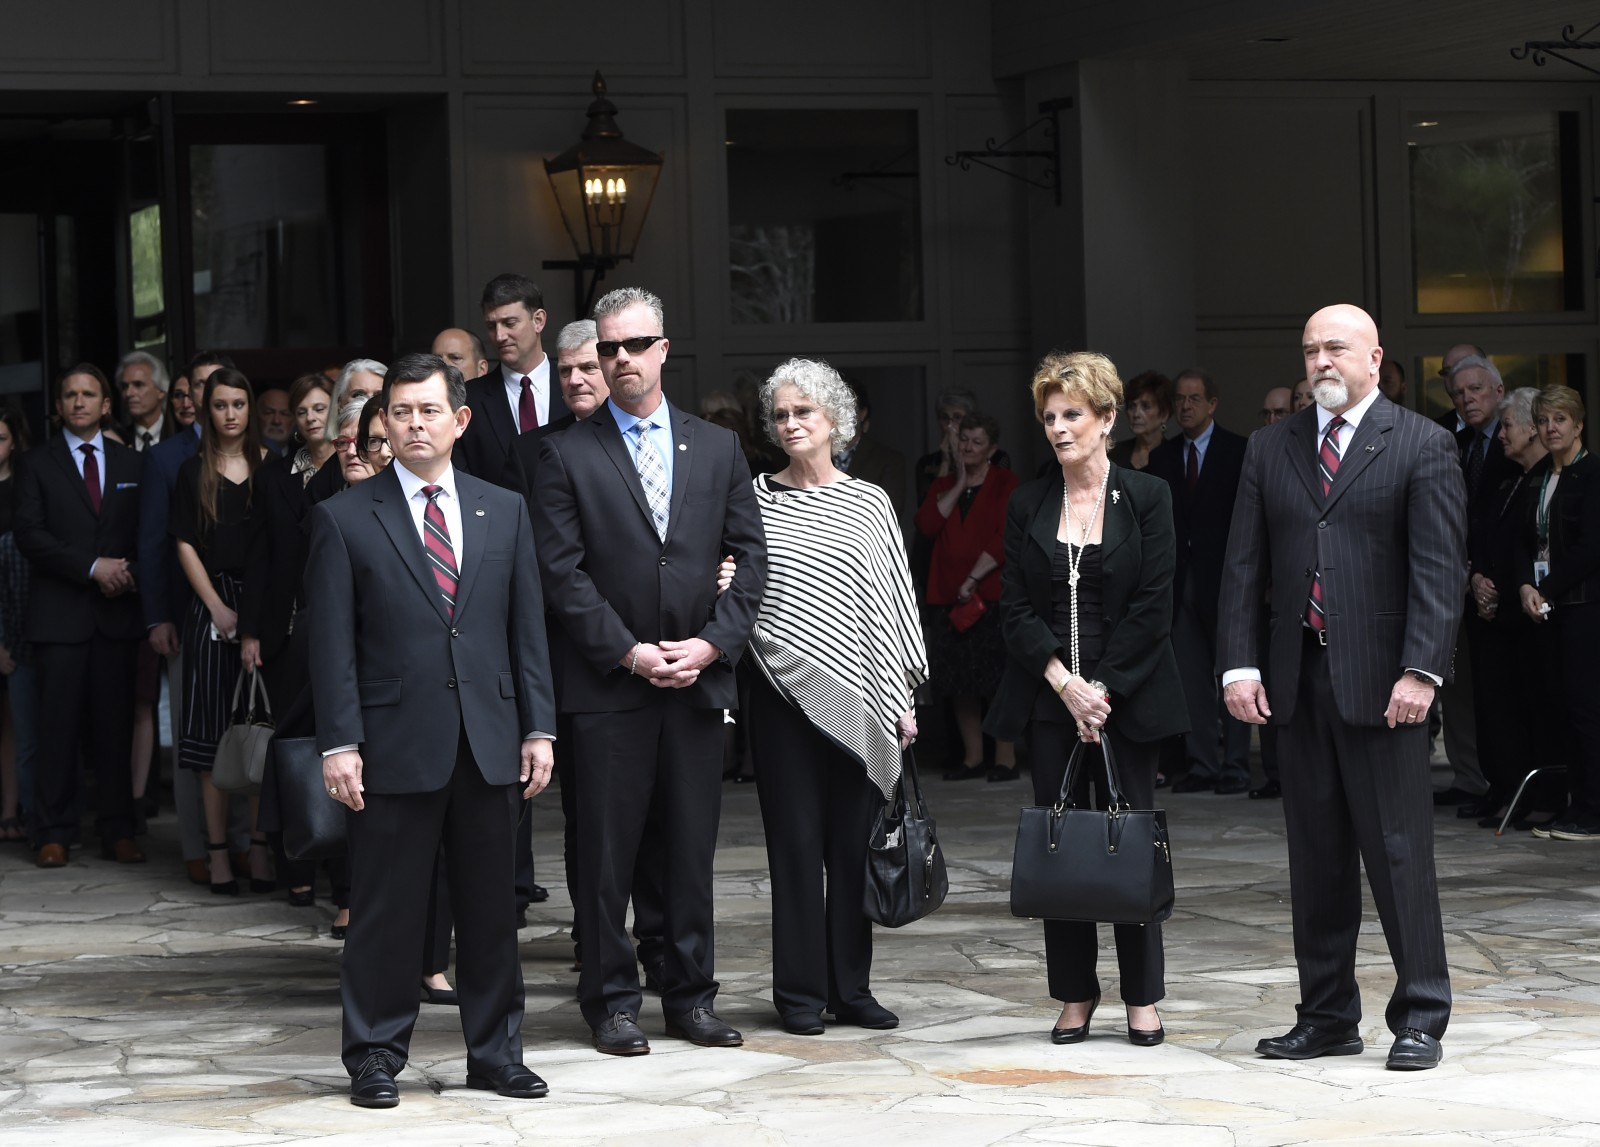 Family members look on as the body of Rev. Billy Graham is carried to the hearse to leave the Billy Graham Training Center at the Cove on Saturday, Feb. 24, 2018, in Asheville, N.C. Graham's body will be brought to his hometown of Charlotte on Saturday, Feb. 24, as part of a procession expected to draw crowds of well-wishers. (Kathy Kmonicek/pool photo)